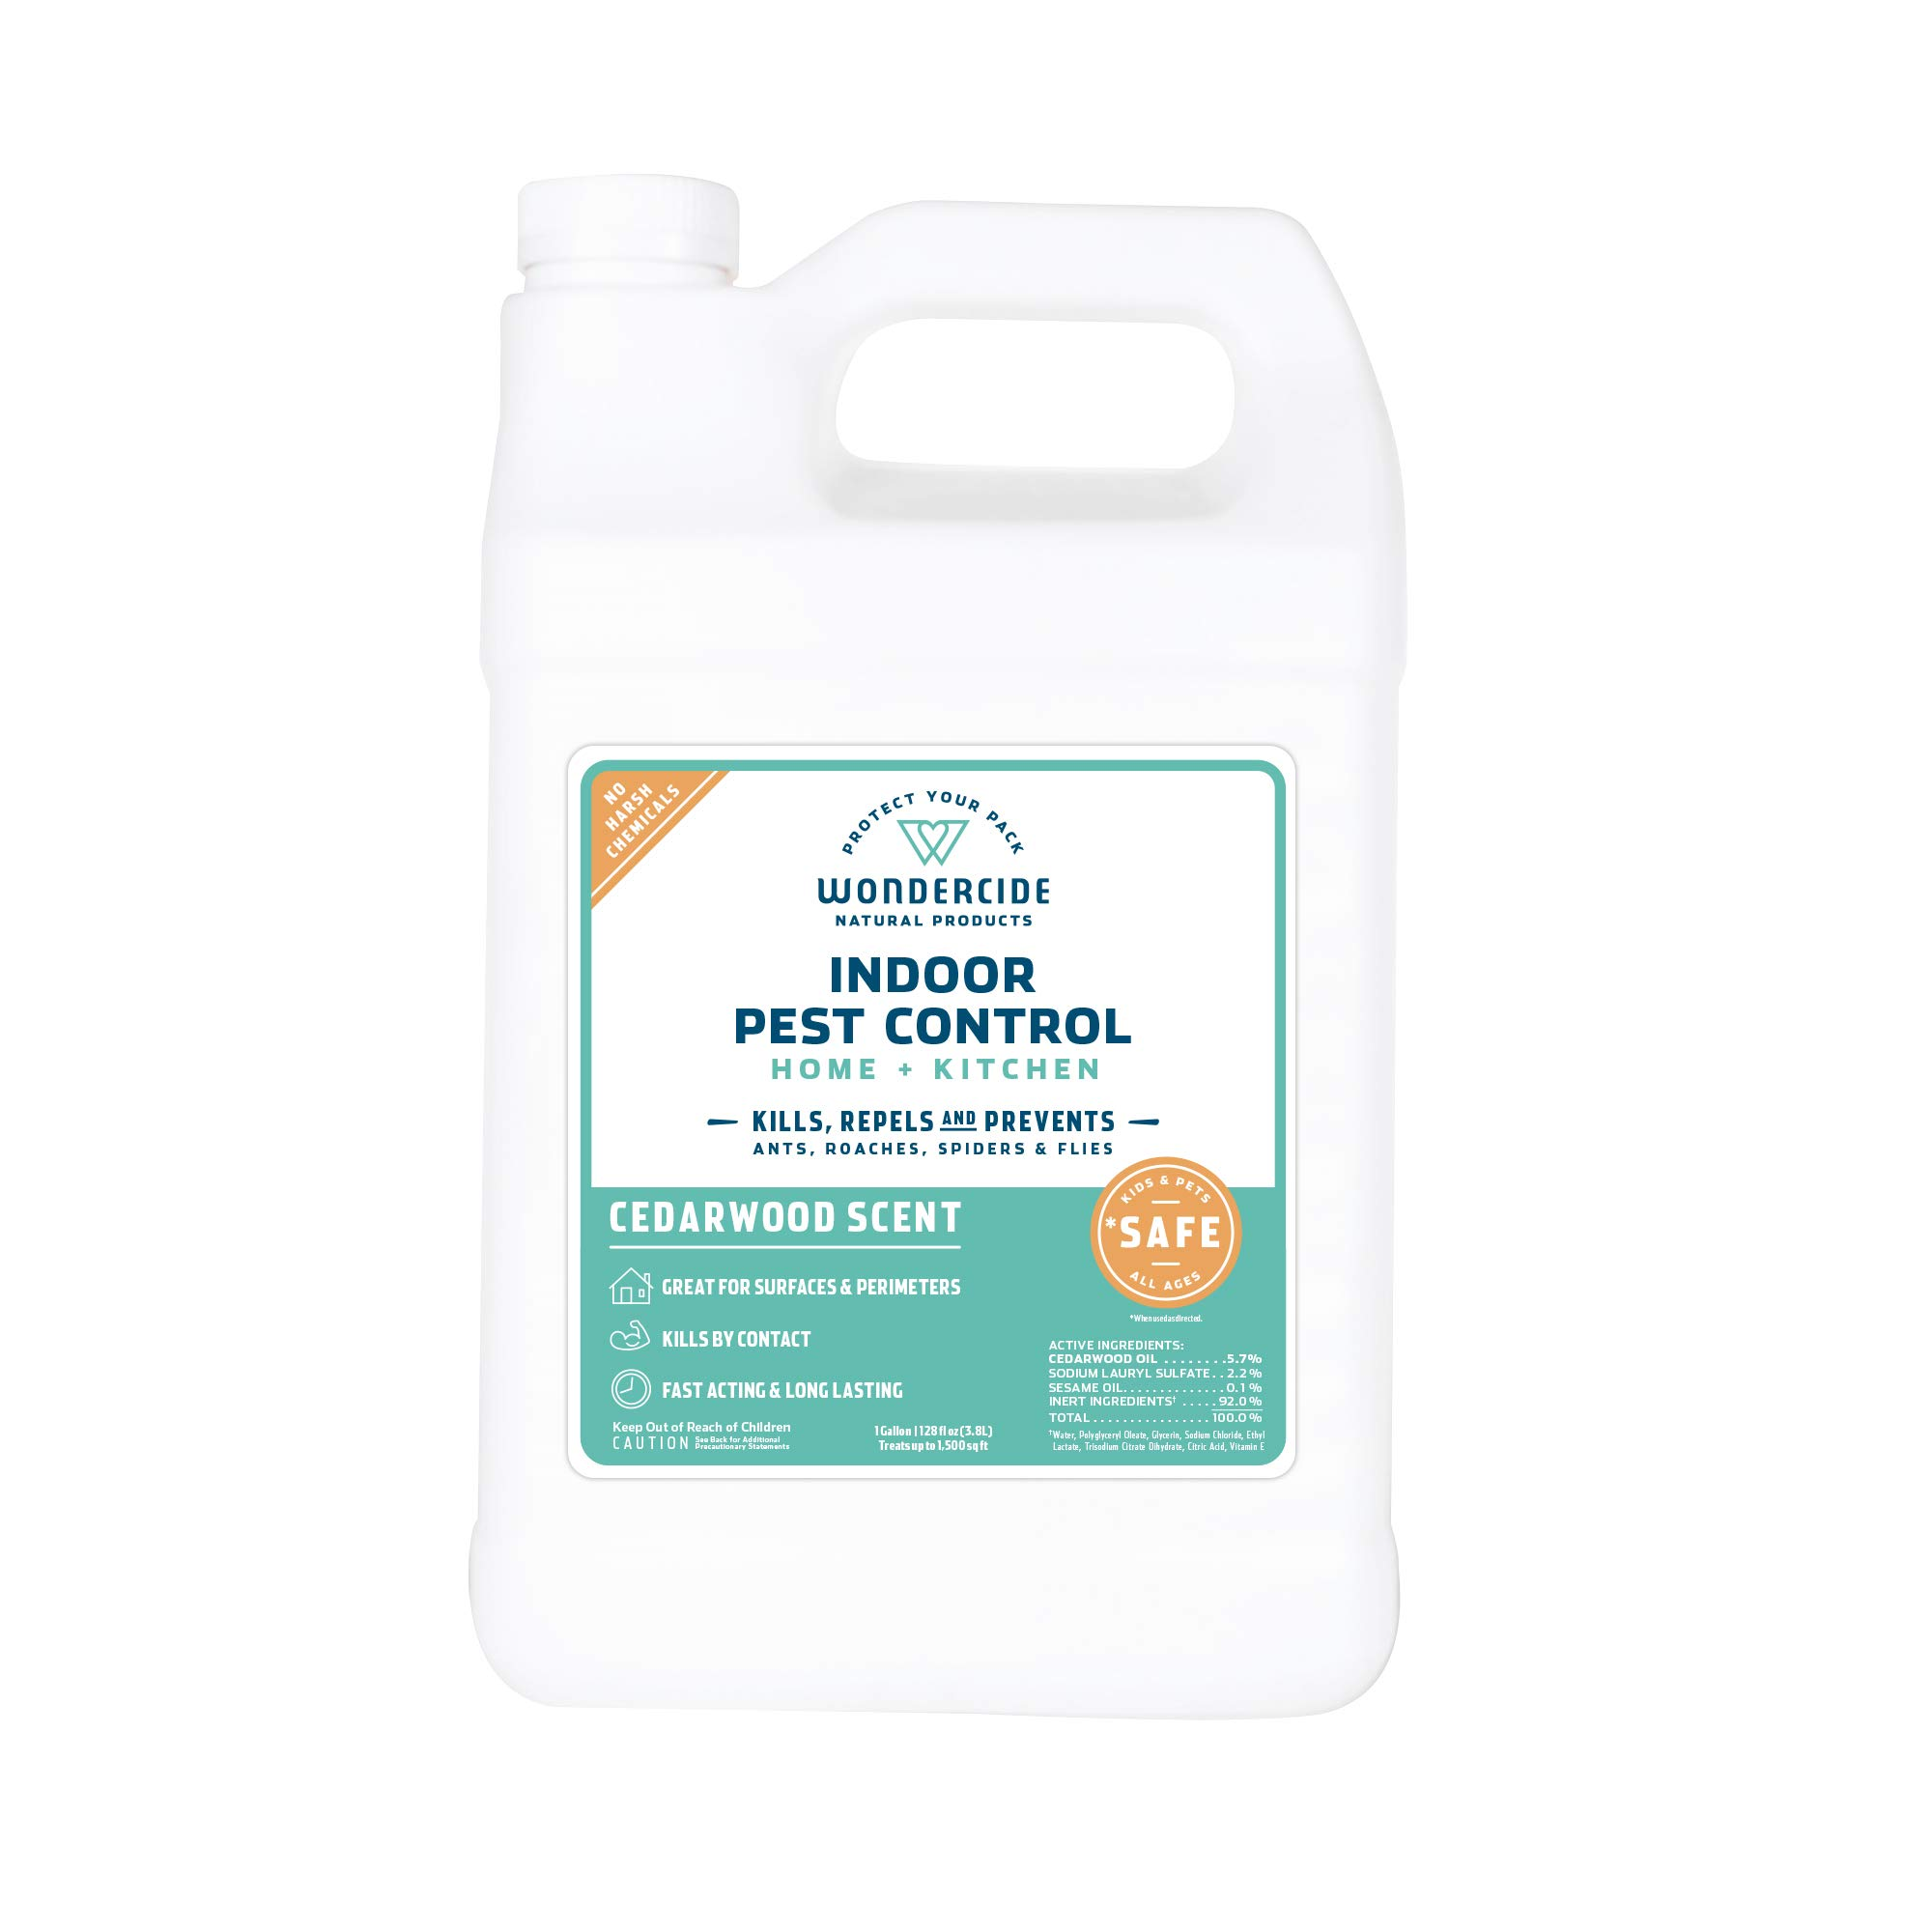 Wondercide Natural Indoor Pest Control Spray for Home and Kitchen - Fly, Ant, Spider, Roach, and Bug Killer and Repellent - 128 oz Cedarwood by Wondercide